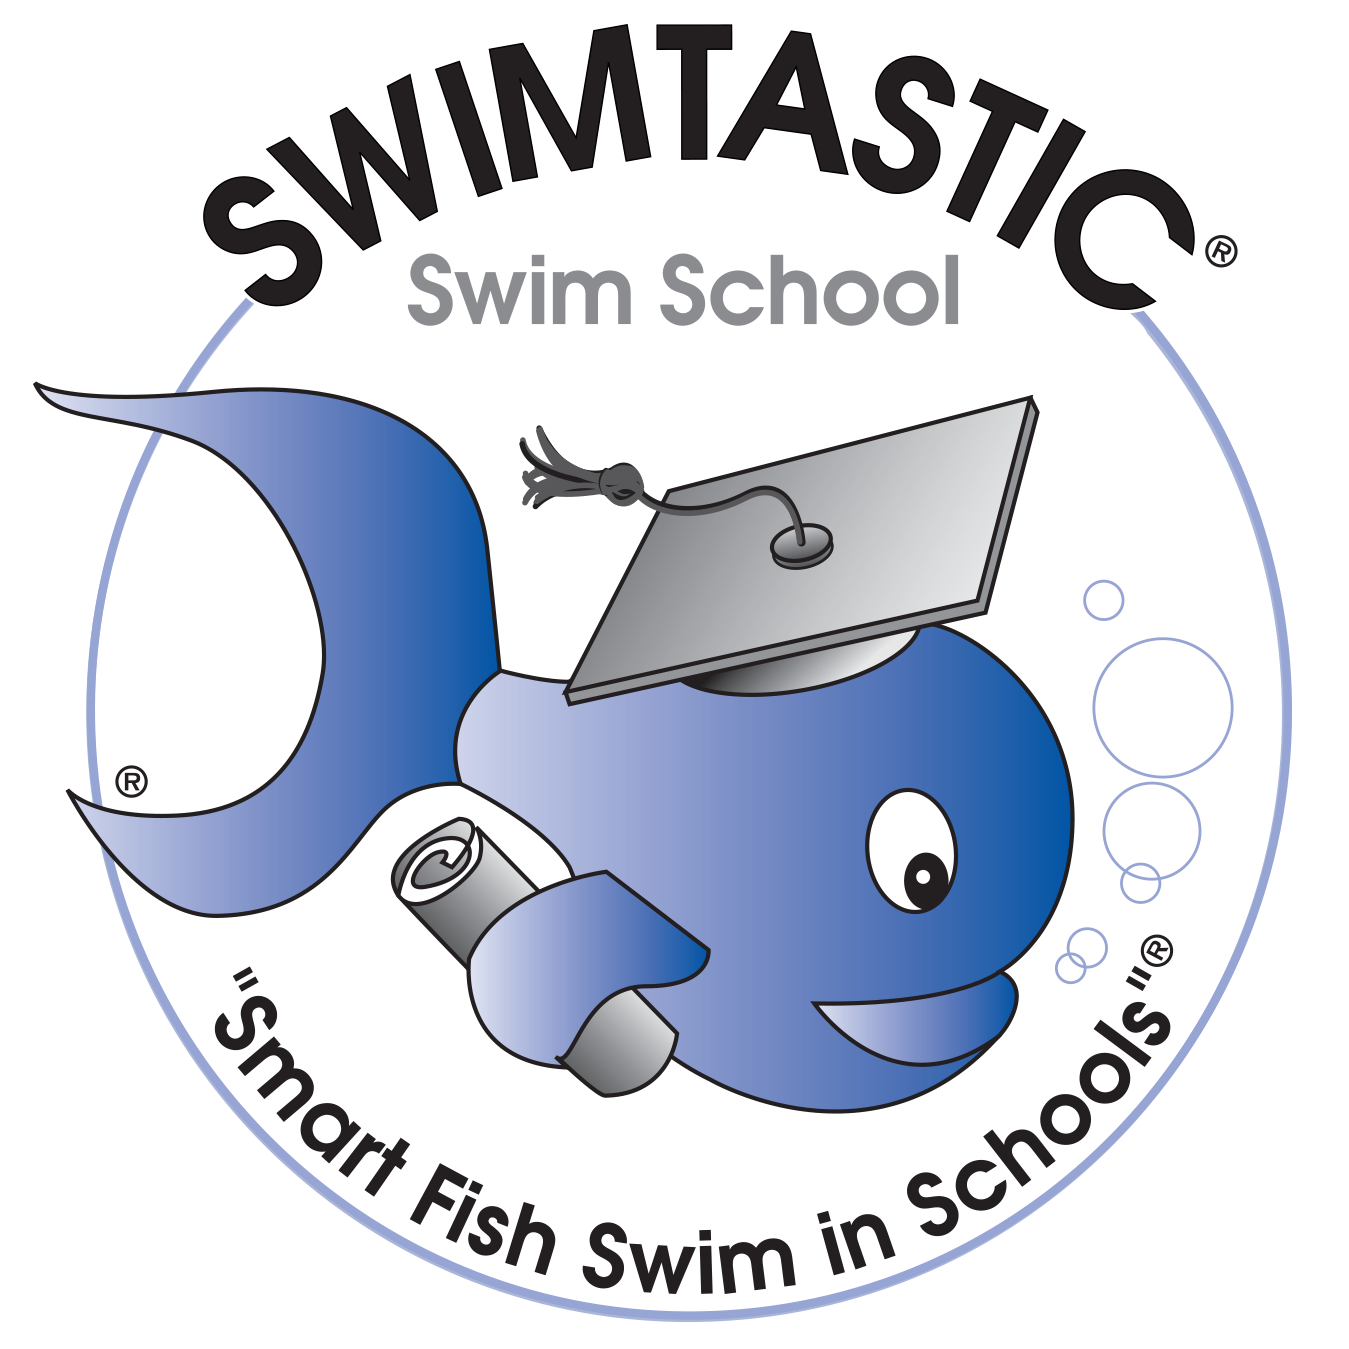 Swimtastic_Franchise_Image.png